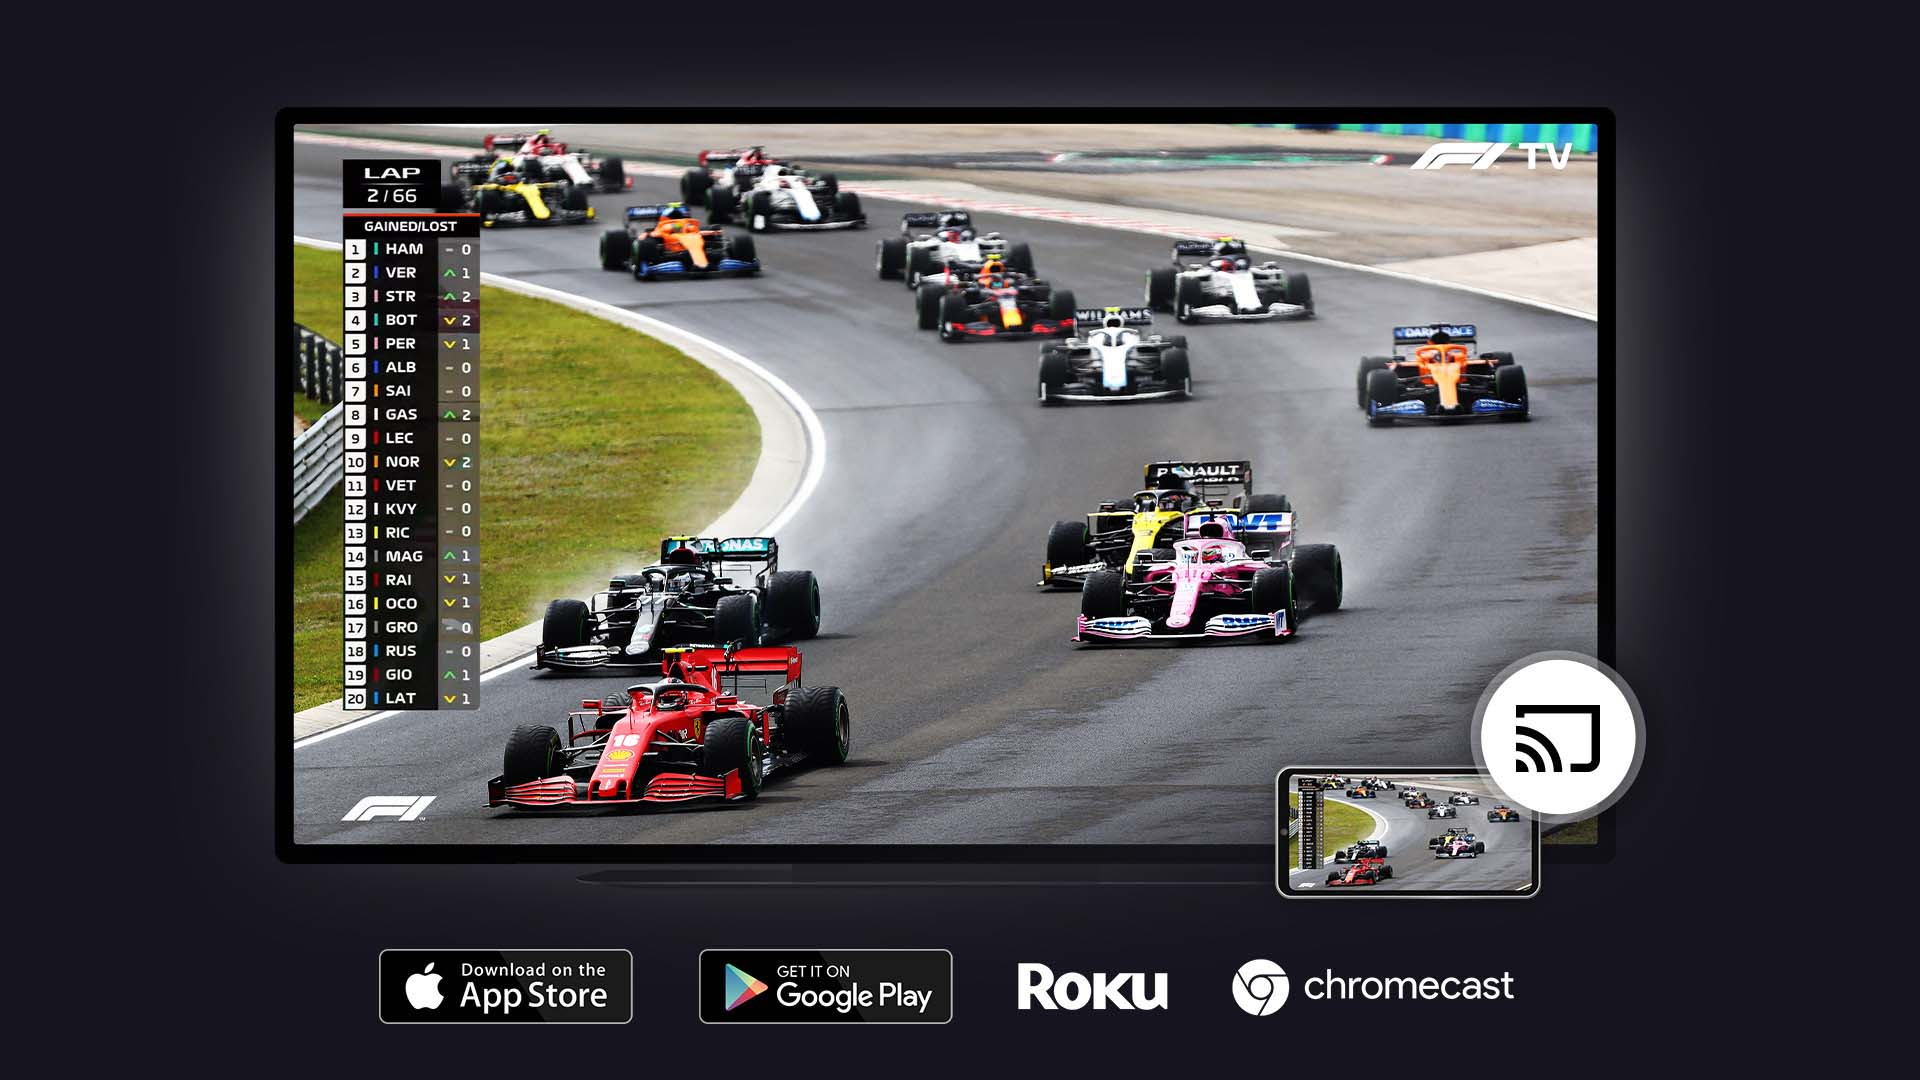 F1 TV Pro promotional image. August 2021